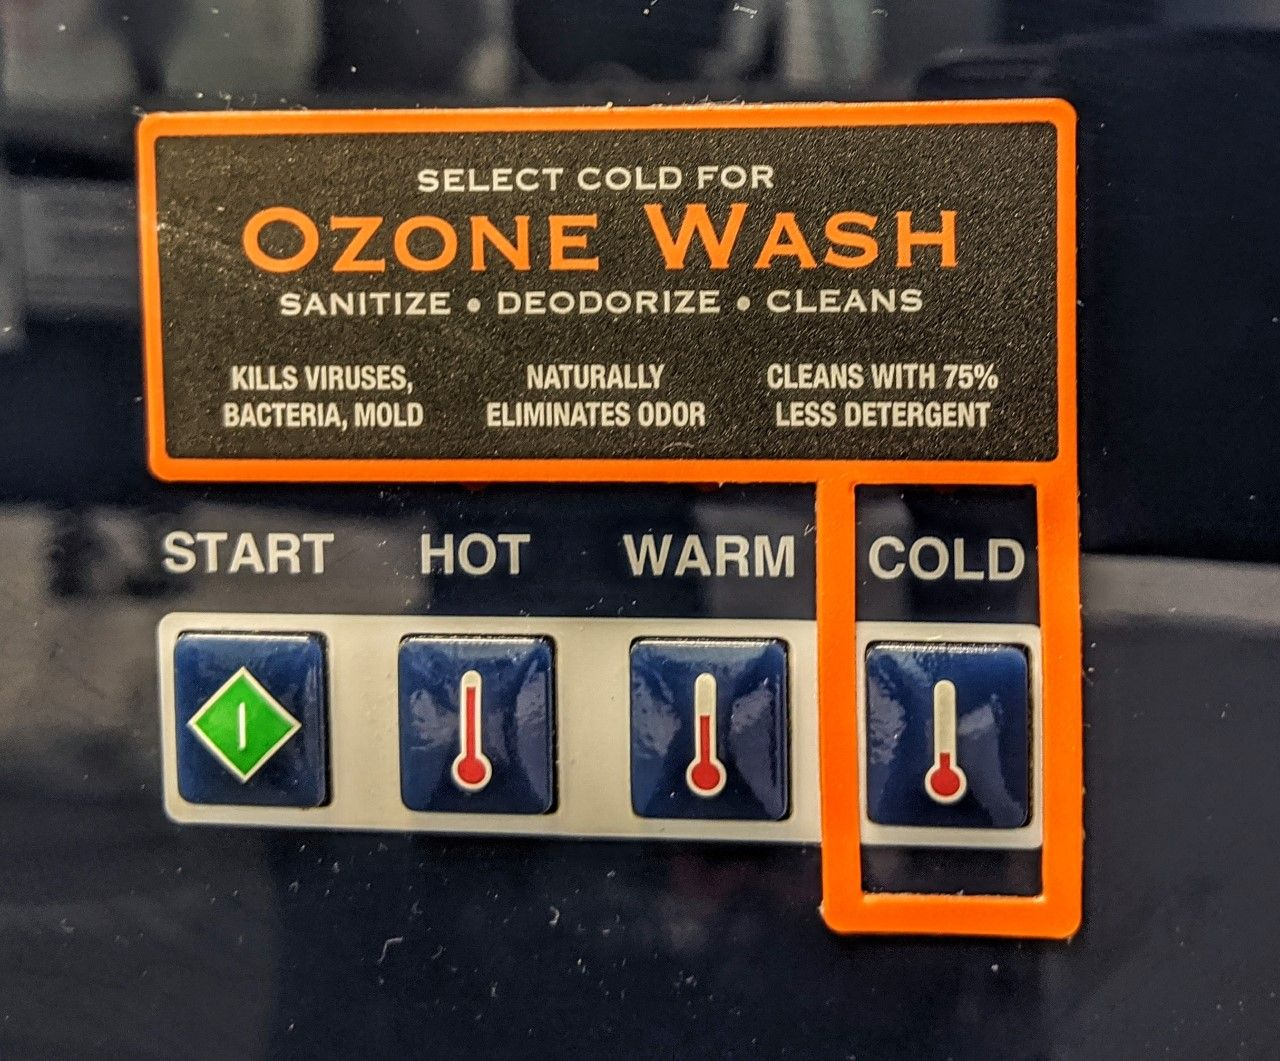 Select cold for Ozone Wash. Sanitizes, deodorizes, cleans.